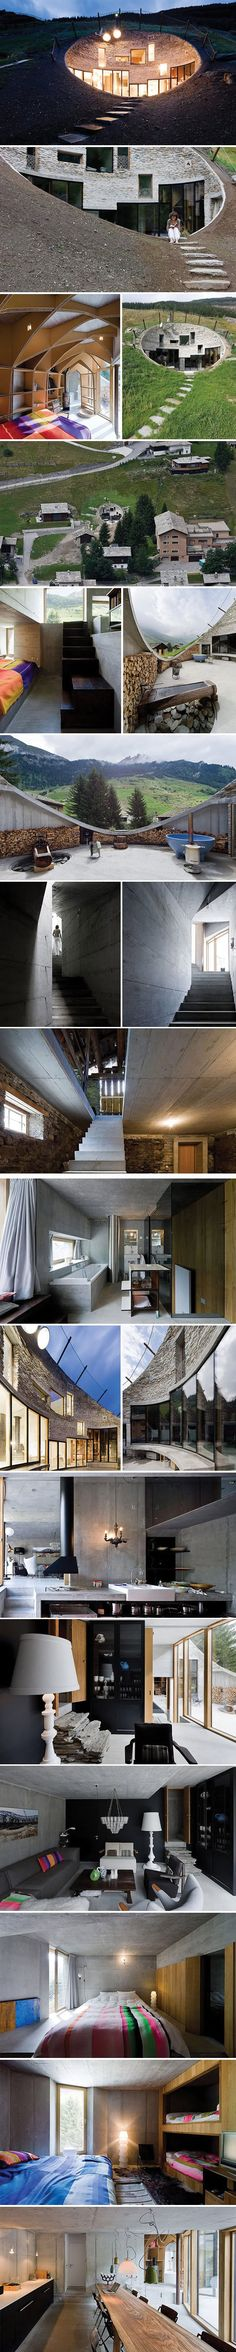 Swiss Underground Moutain House.